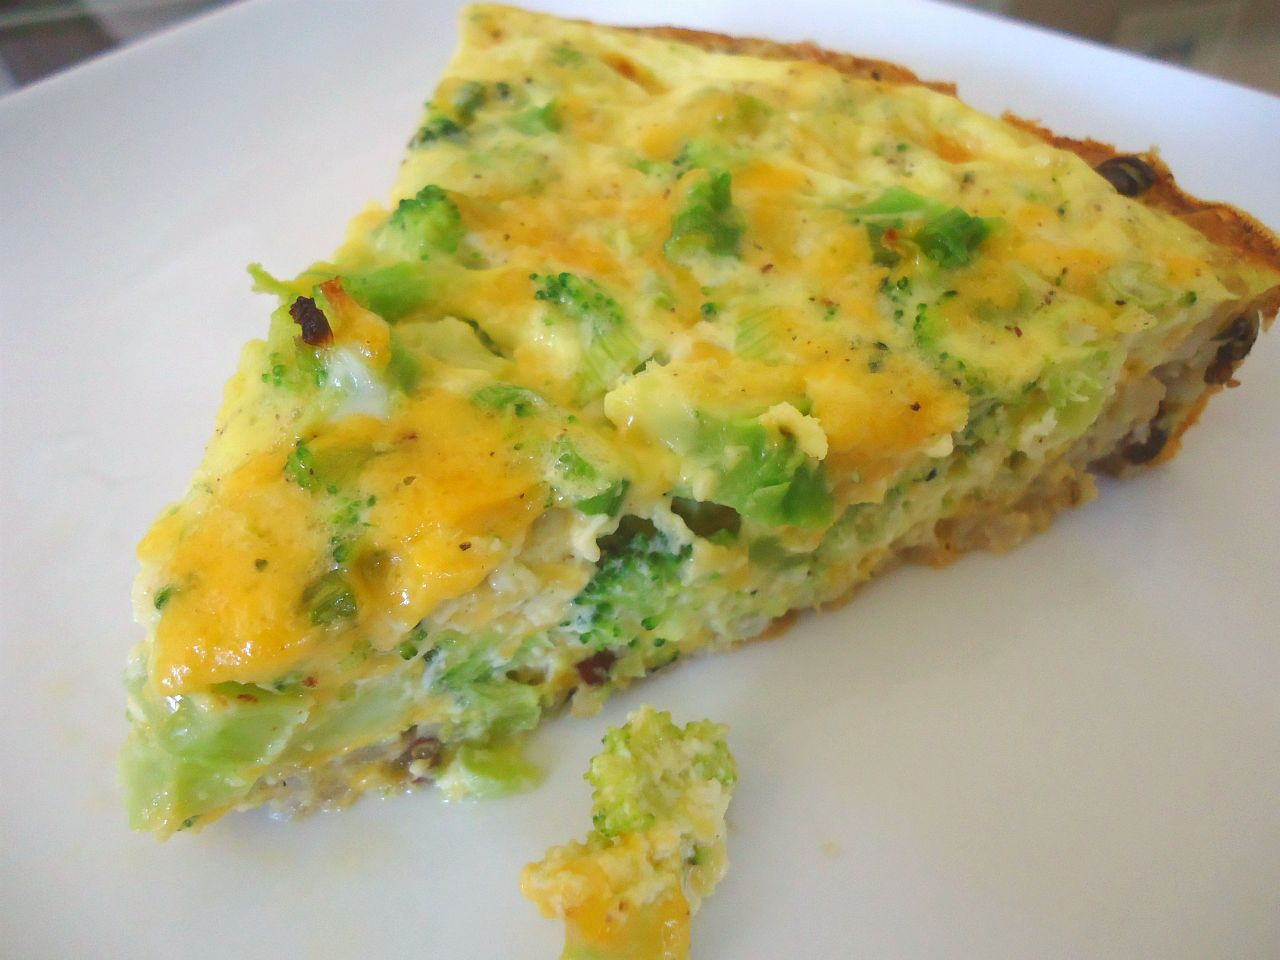 The Beachside Baker: Broccoli & Cheddar Quiche with a Brown ..